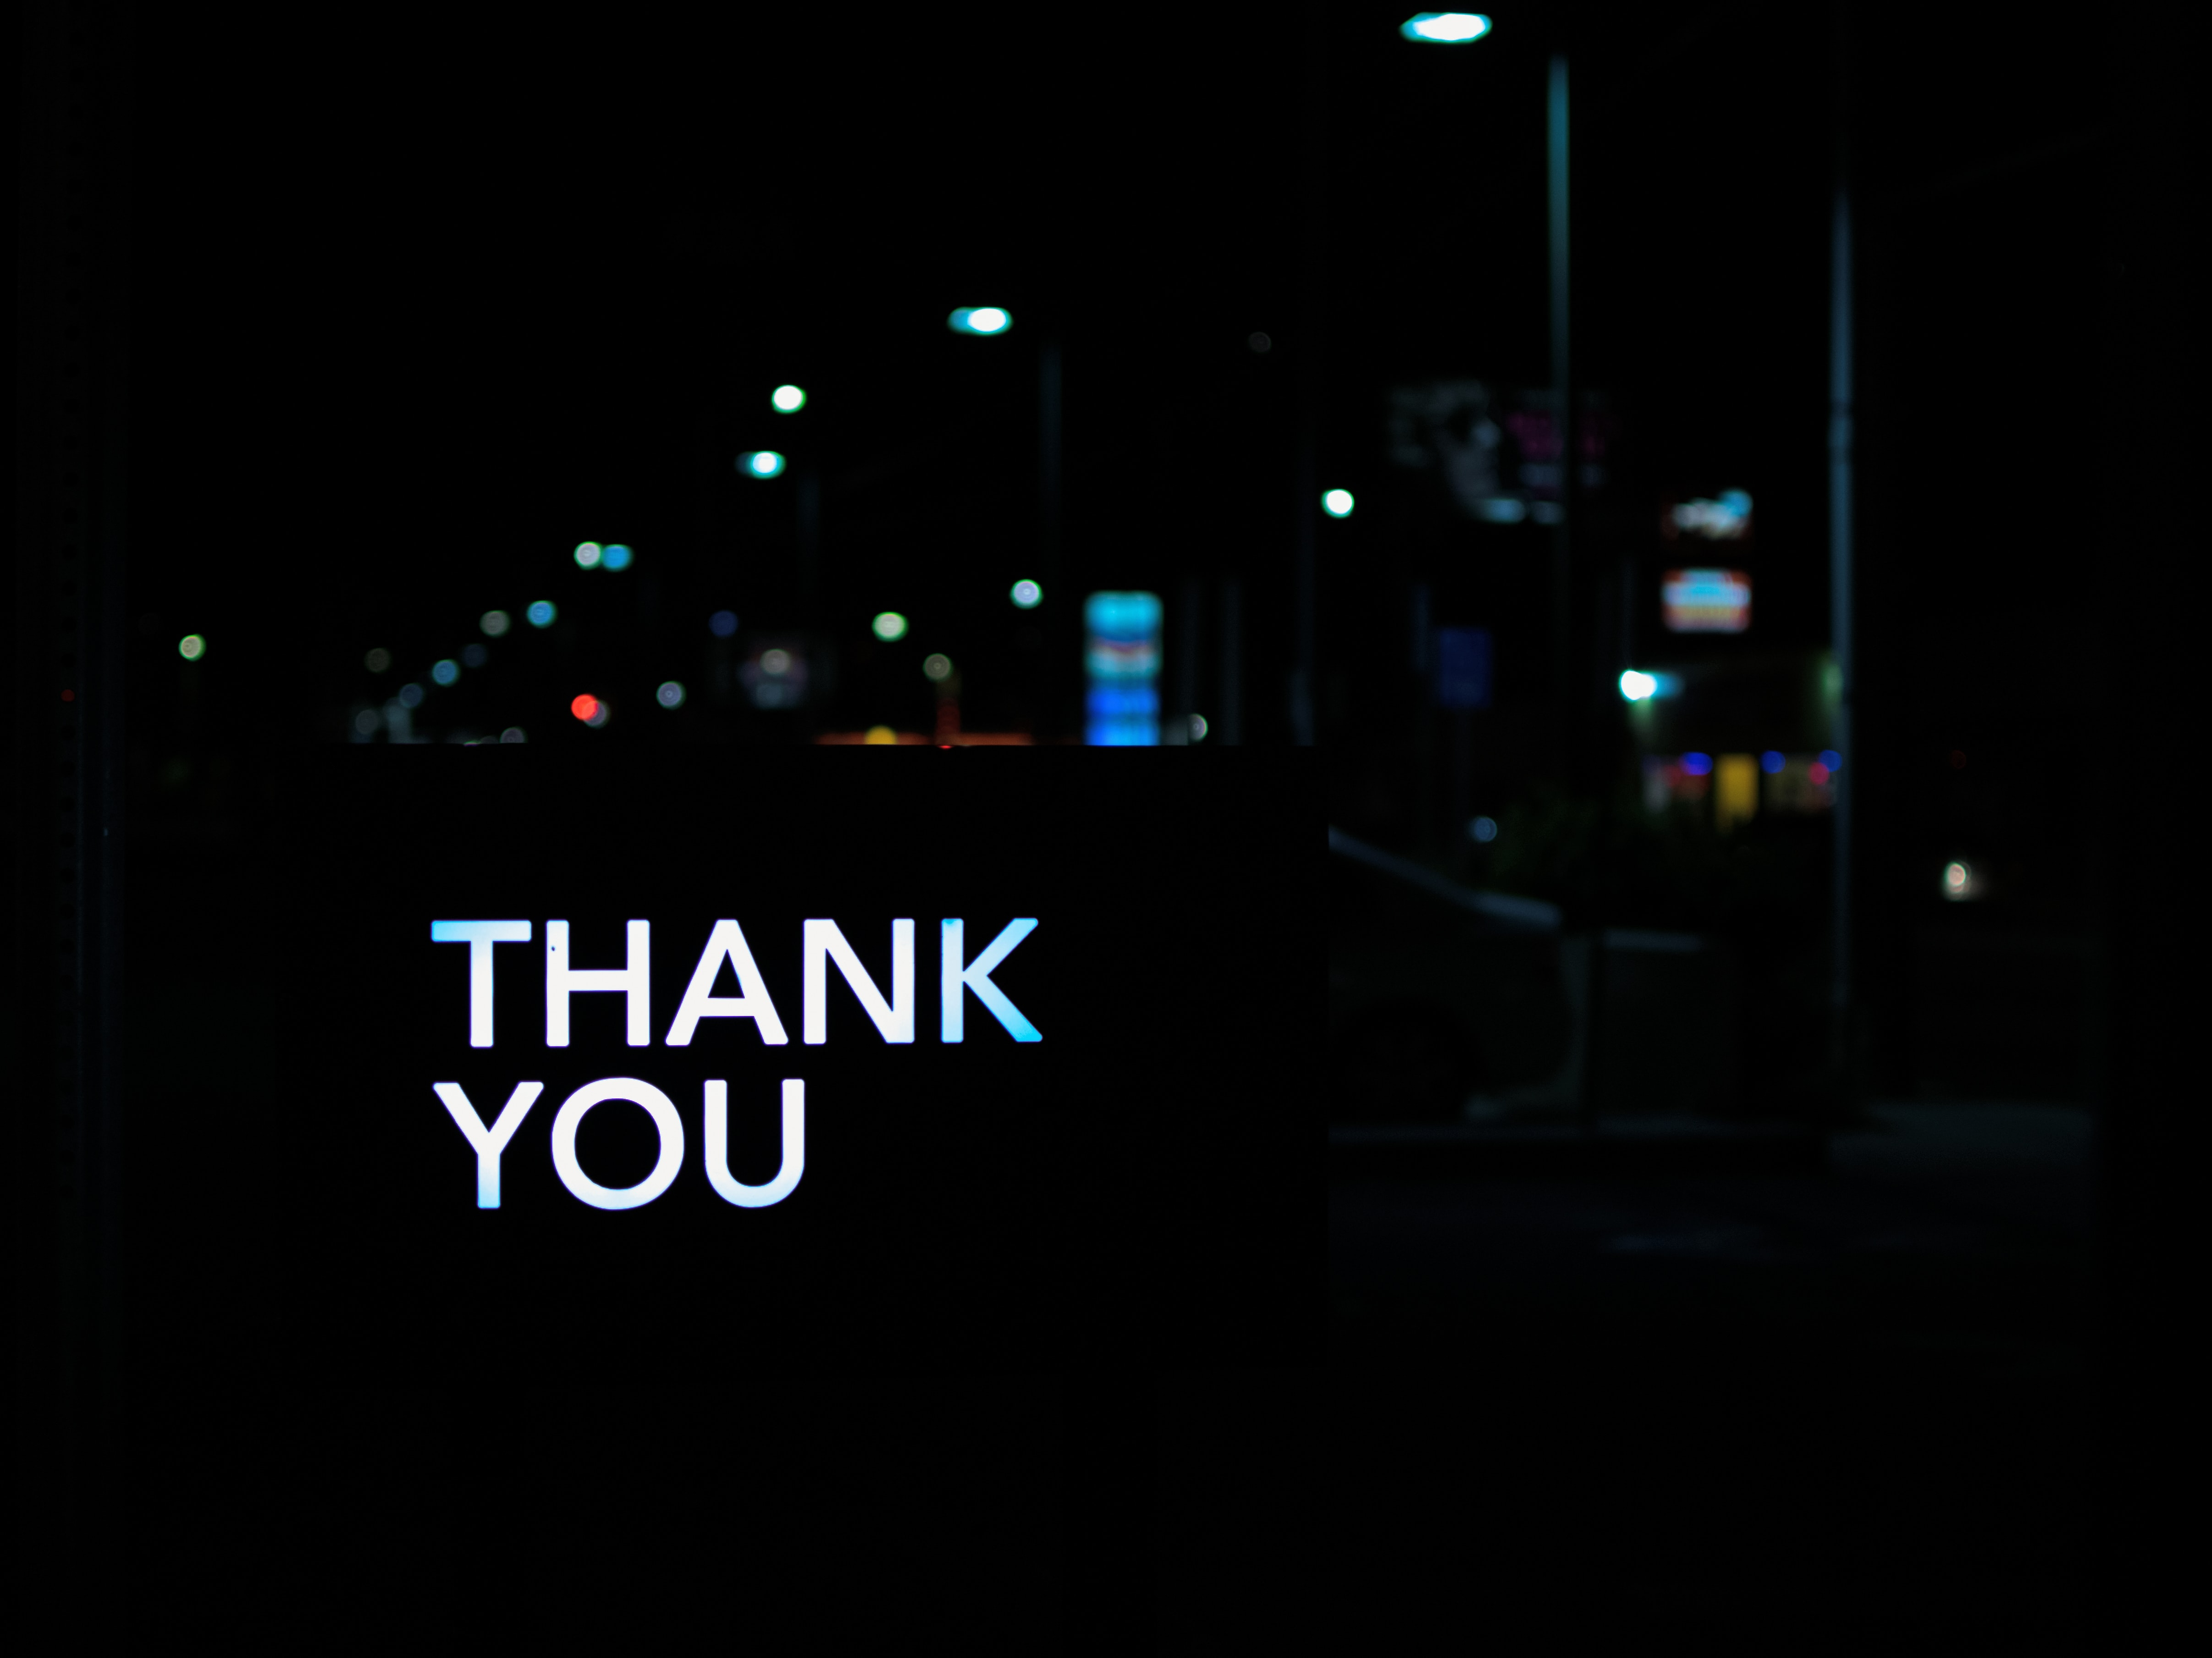 THANK YOU! #knowme #introduction  #loveyou stories